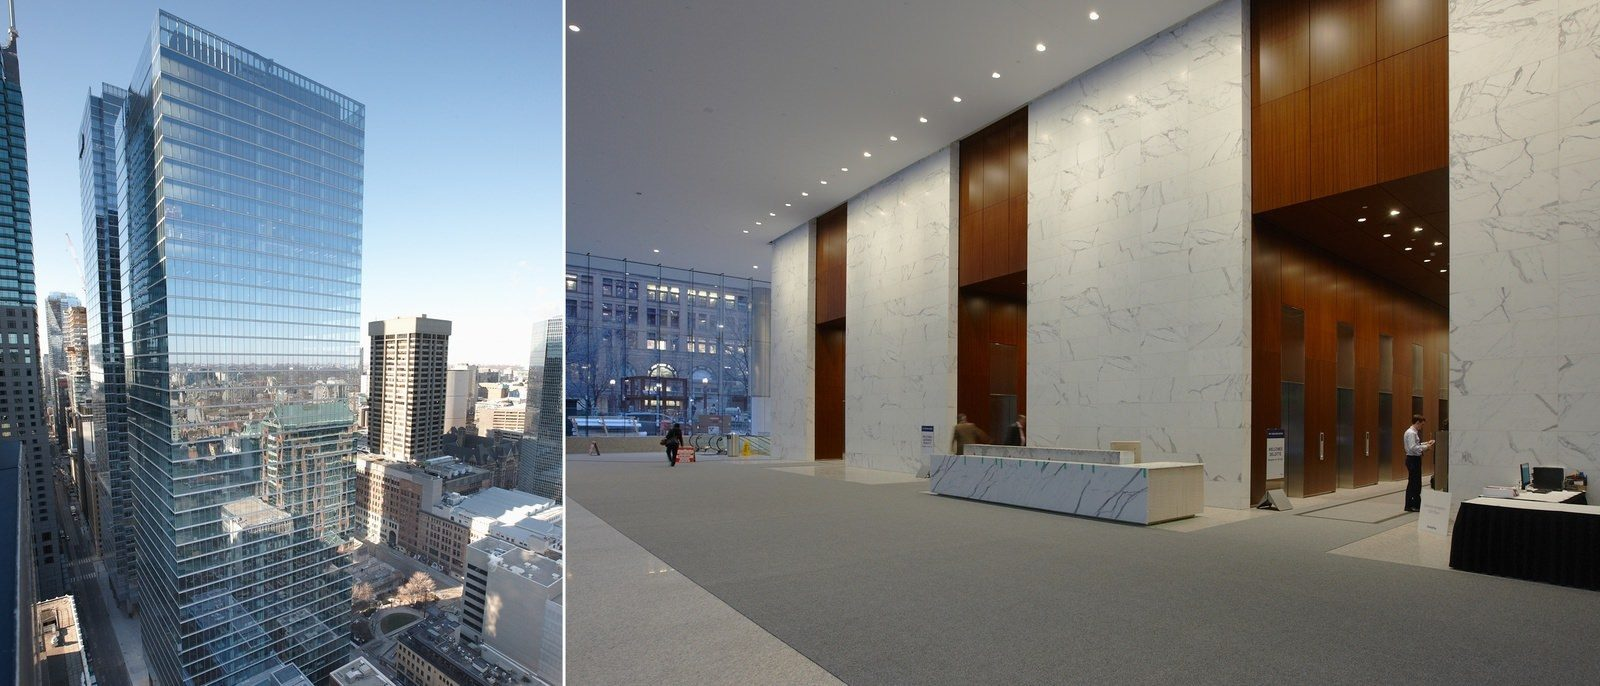 A large glass building in a city that has a very big lobby that has a desk and elevators in it.